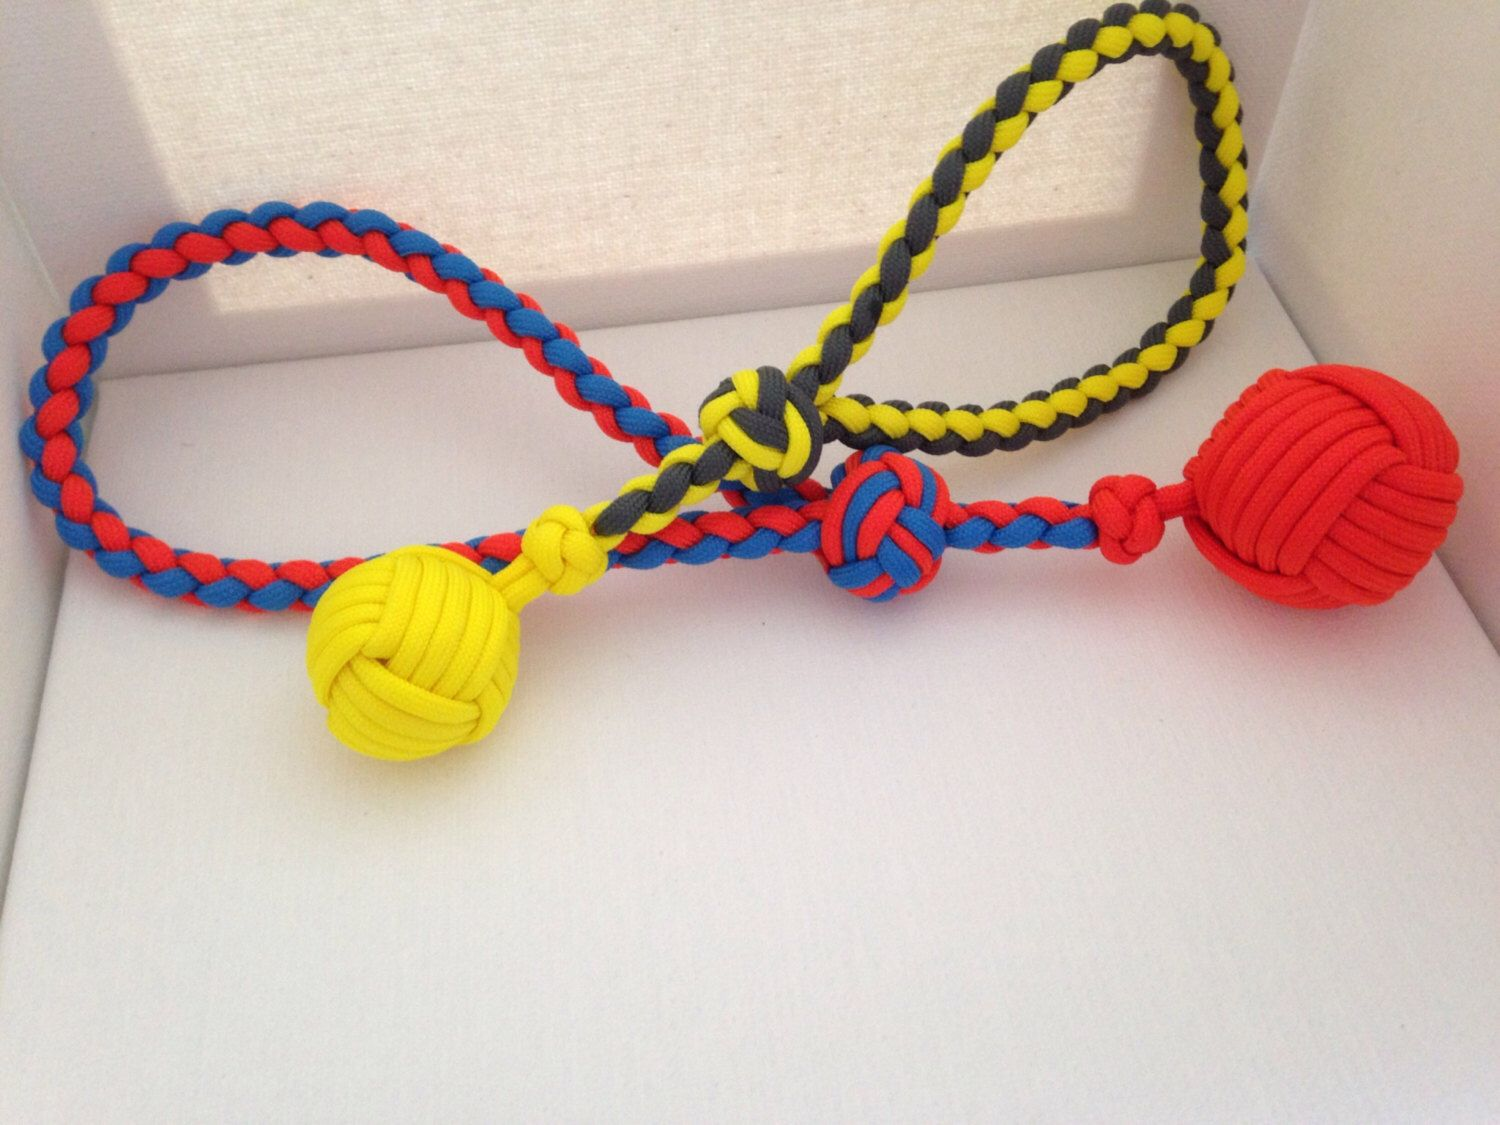 Pin By Heather Patterson On Knotonlyparacord Durable Dog Toys